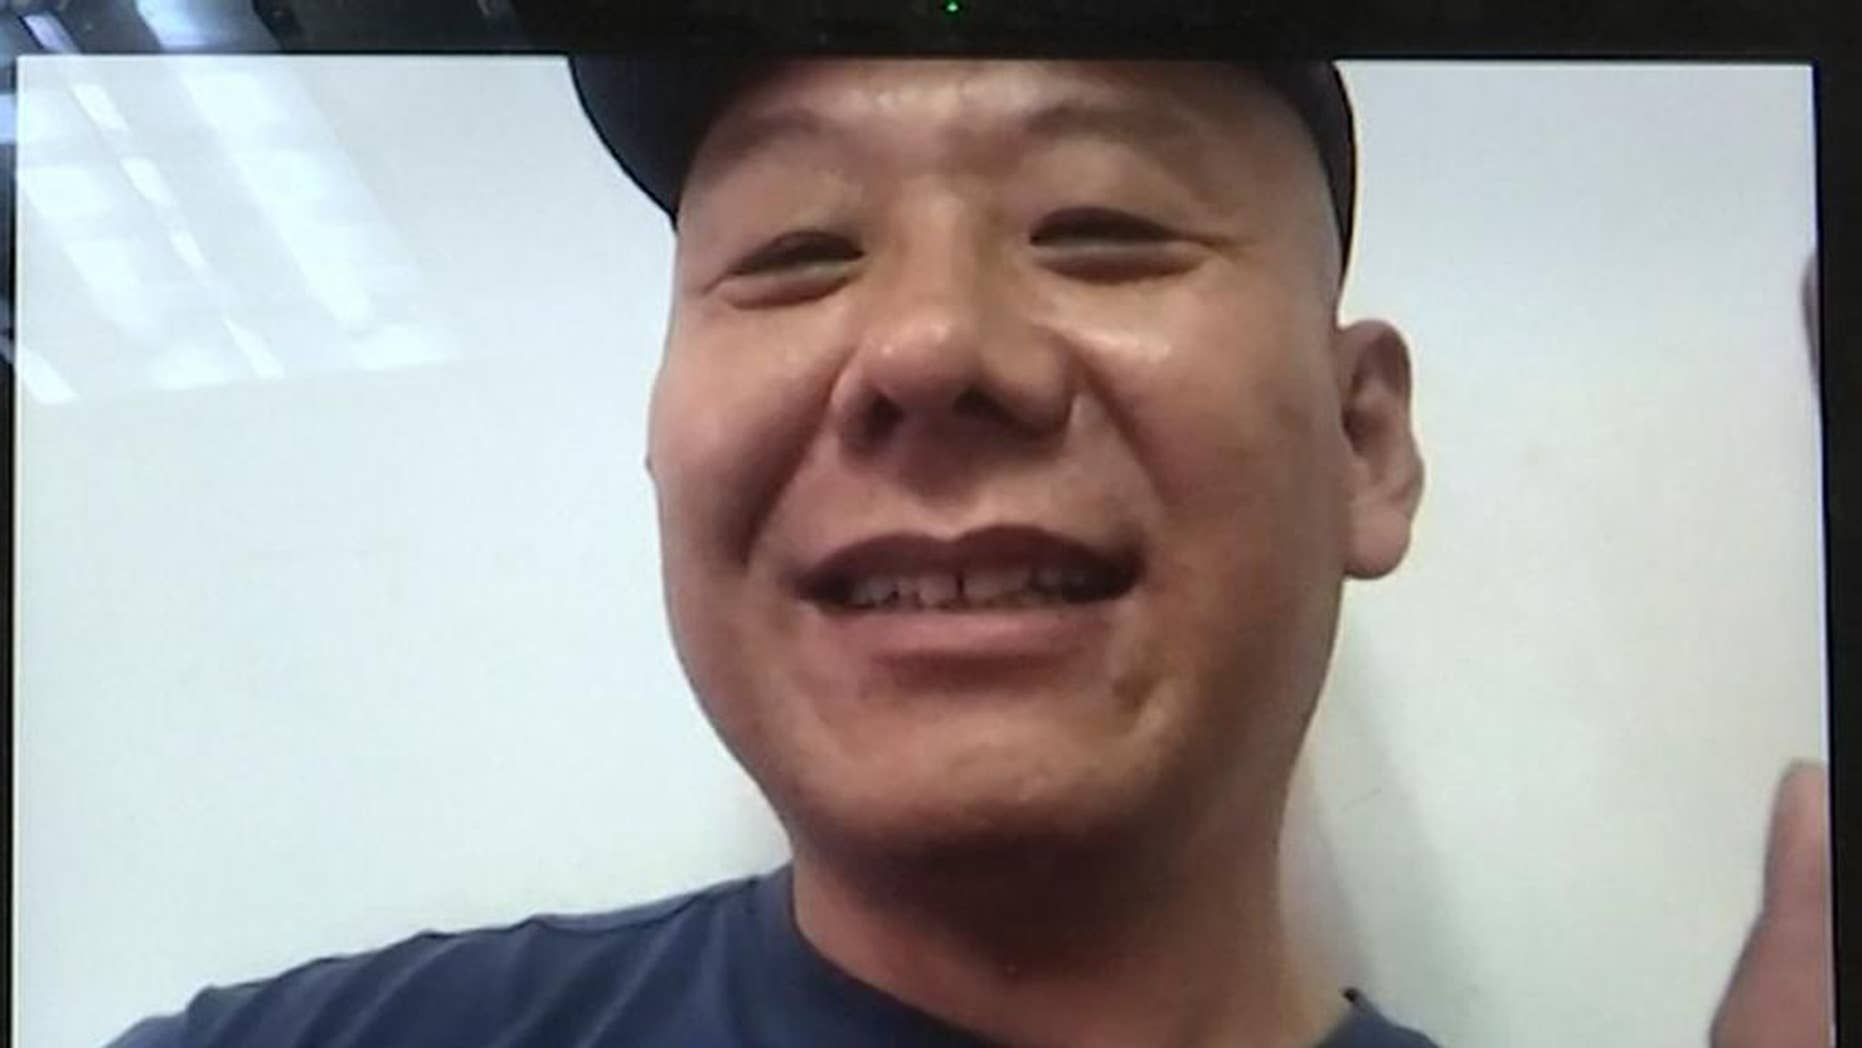 FILE - In this Monday, April 17, 2017, file photo, Chinese dissident Zhang Xiangzhong is seen on a computer screen during an interview via videoconference in Taipei, Taiwan. Taiwan's return Zhang this week is seen by analysts as a possible bid by President Tsai Ing-wen to stabilize relations with Beijing. Officials in Taipei say Chinese national Zhang Xiangzhong lacked legal grounds to stay in Taiwan after breaking away from his tour group on April 13. Analysts say Tsai's administration may be hoping China responds in kind. (AP Photo/Johnson Lai, File)